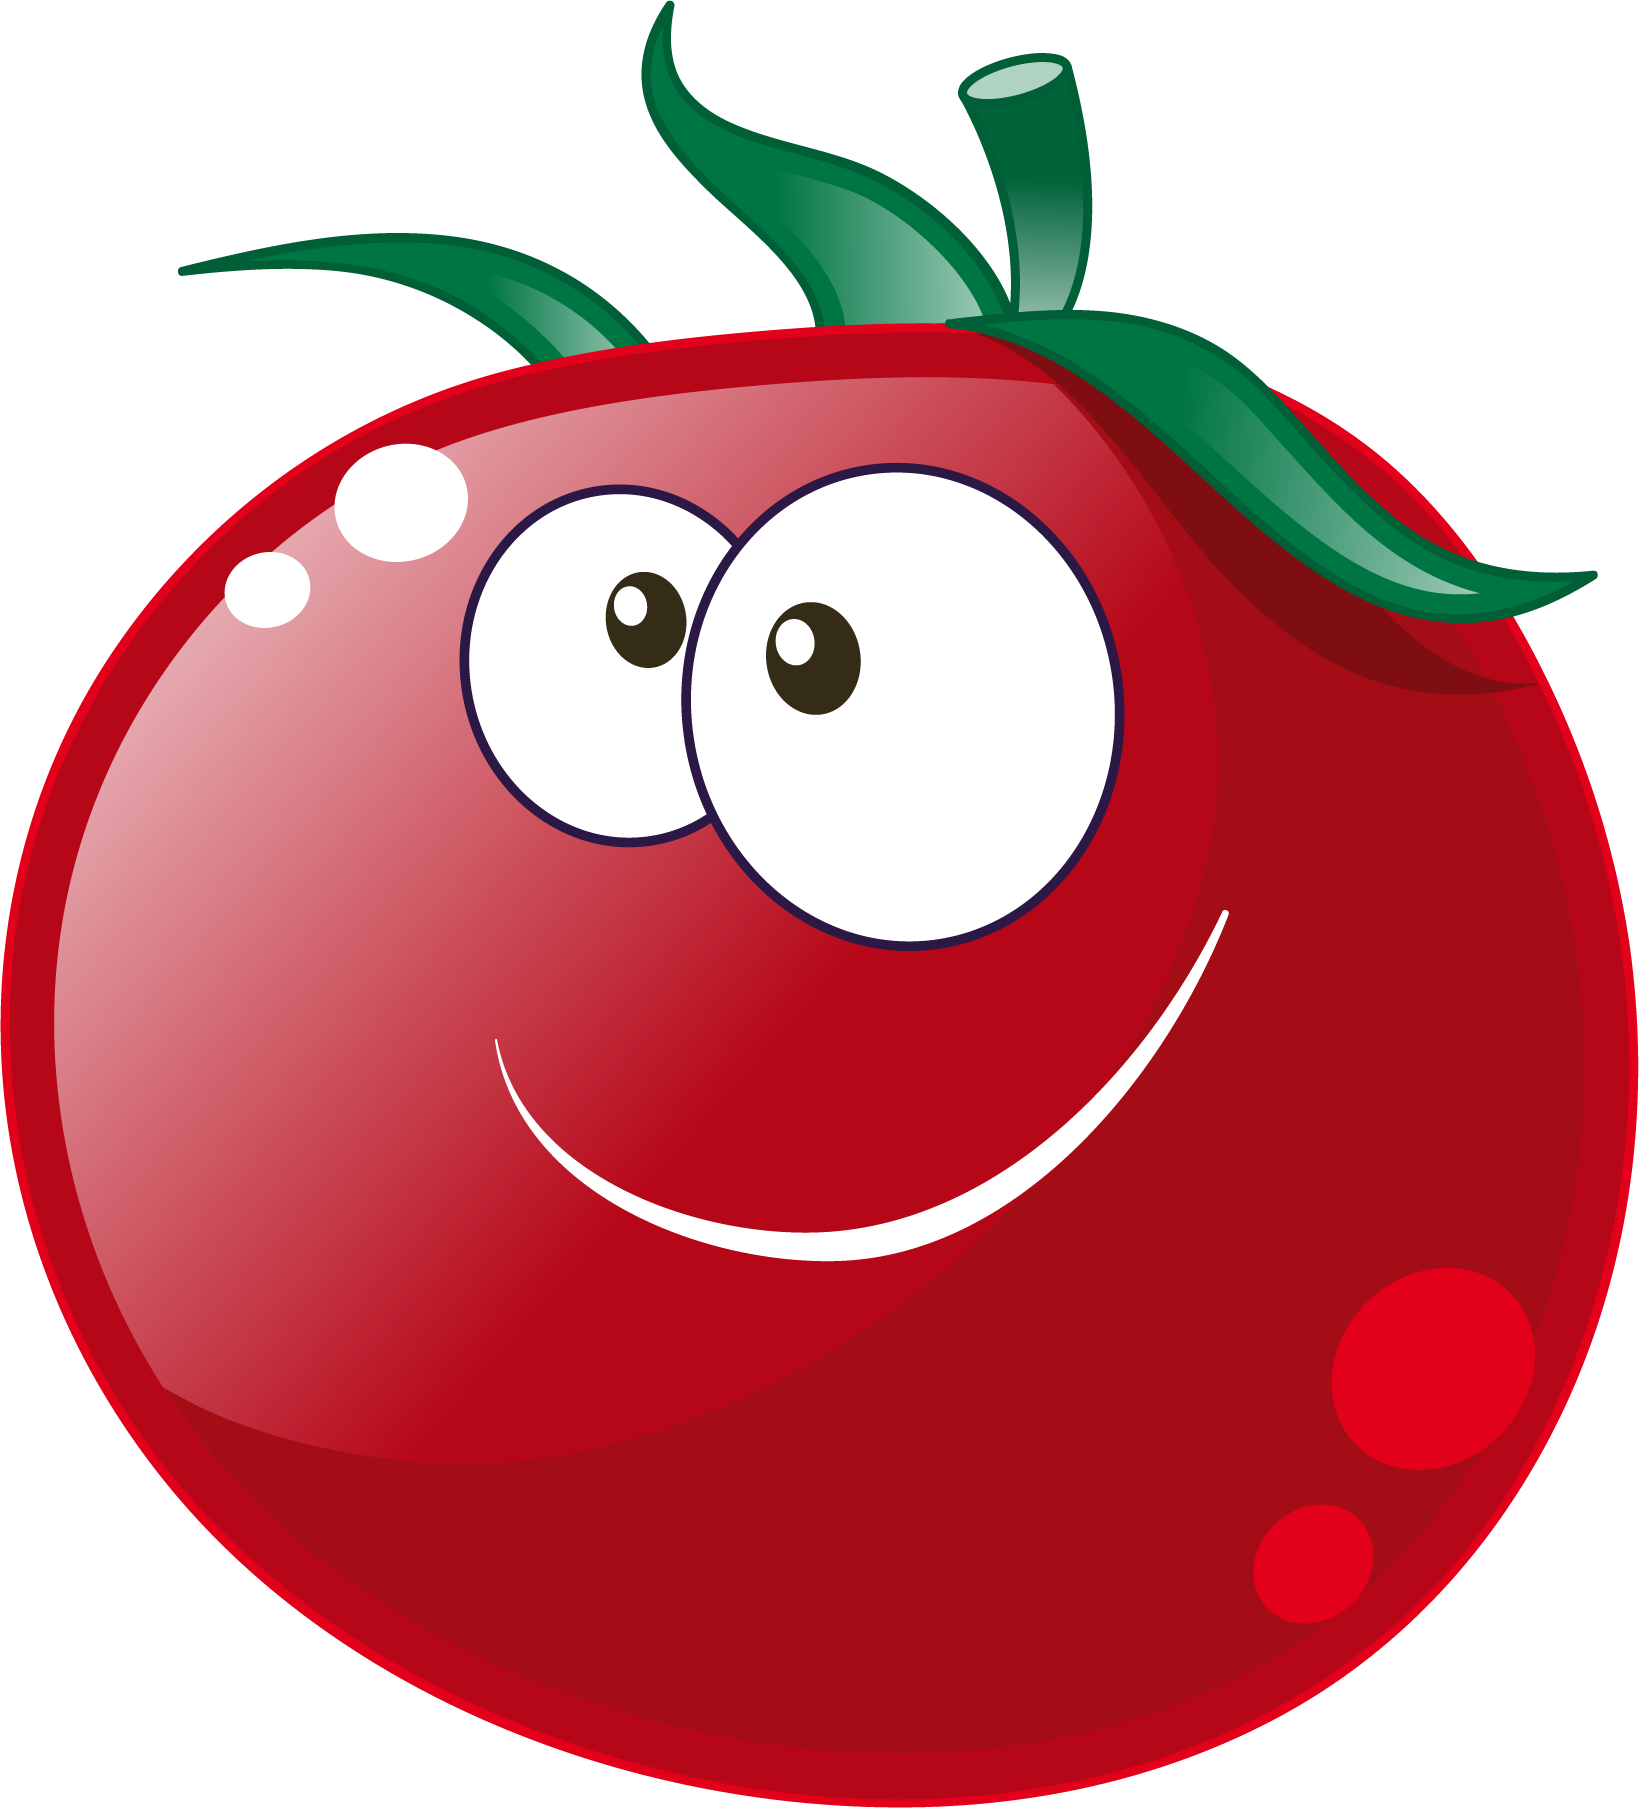 Tomatoes clipart diced tomatoes. Tomato png images transparent